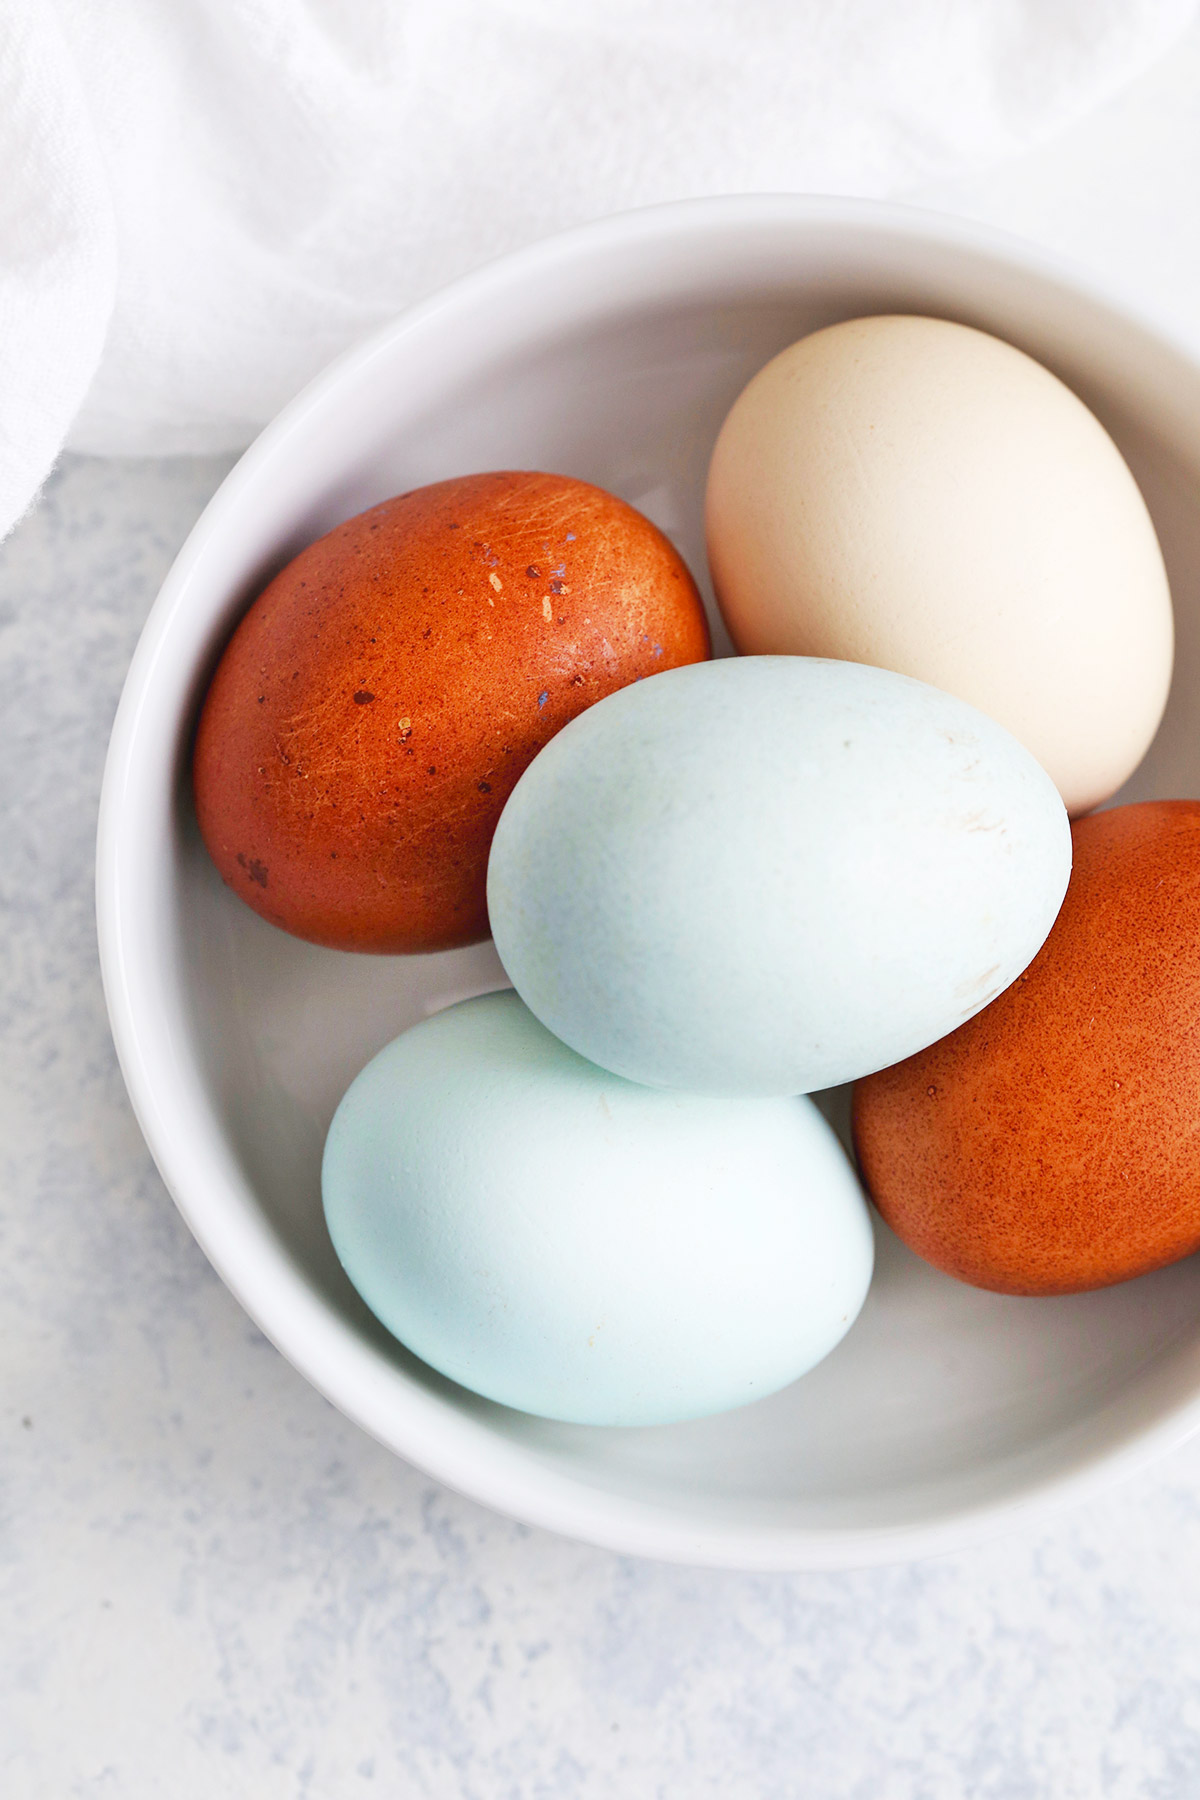 Overhead view of different colors of eggs in a white bowl.